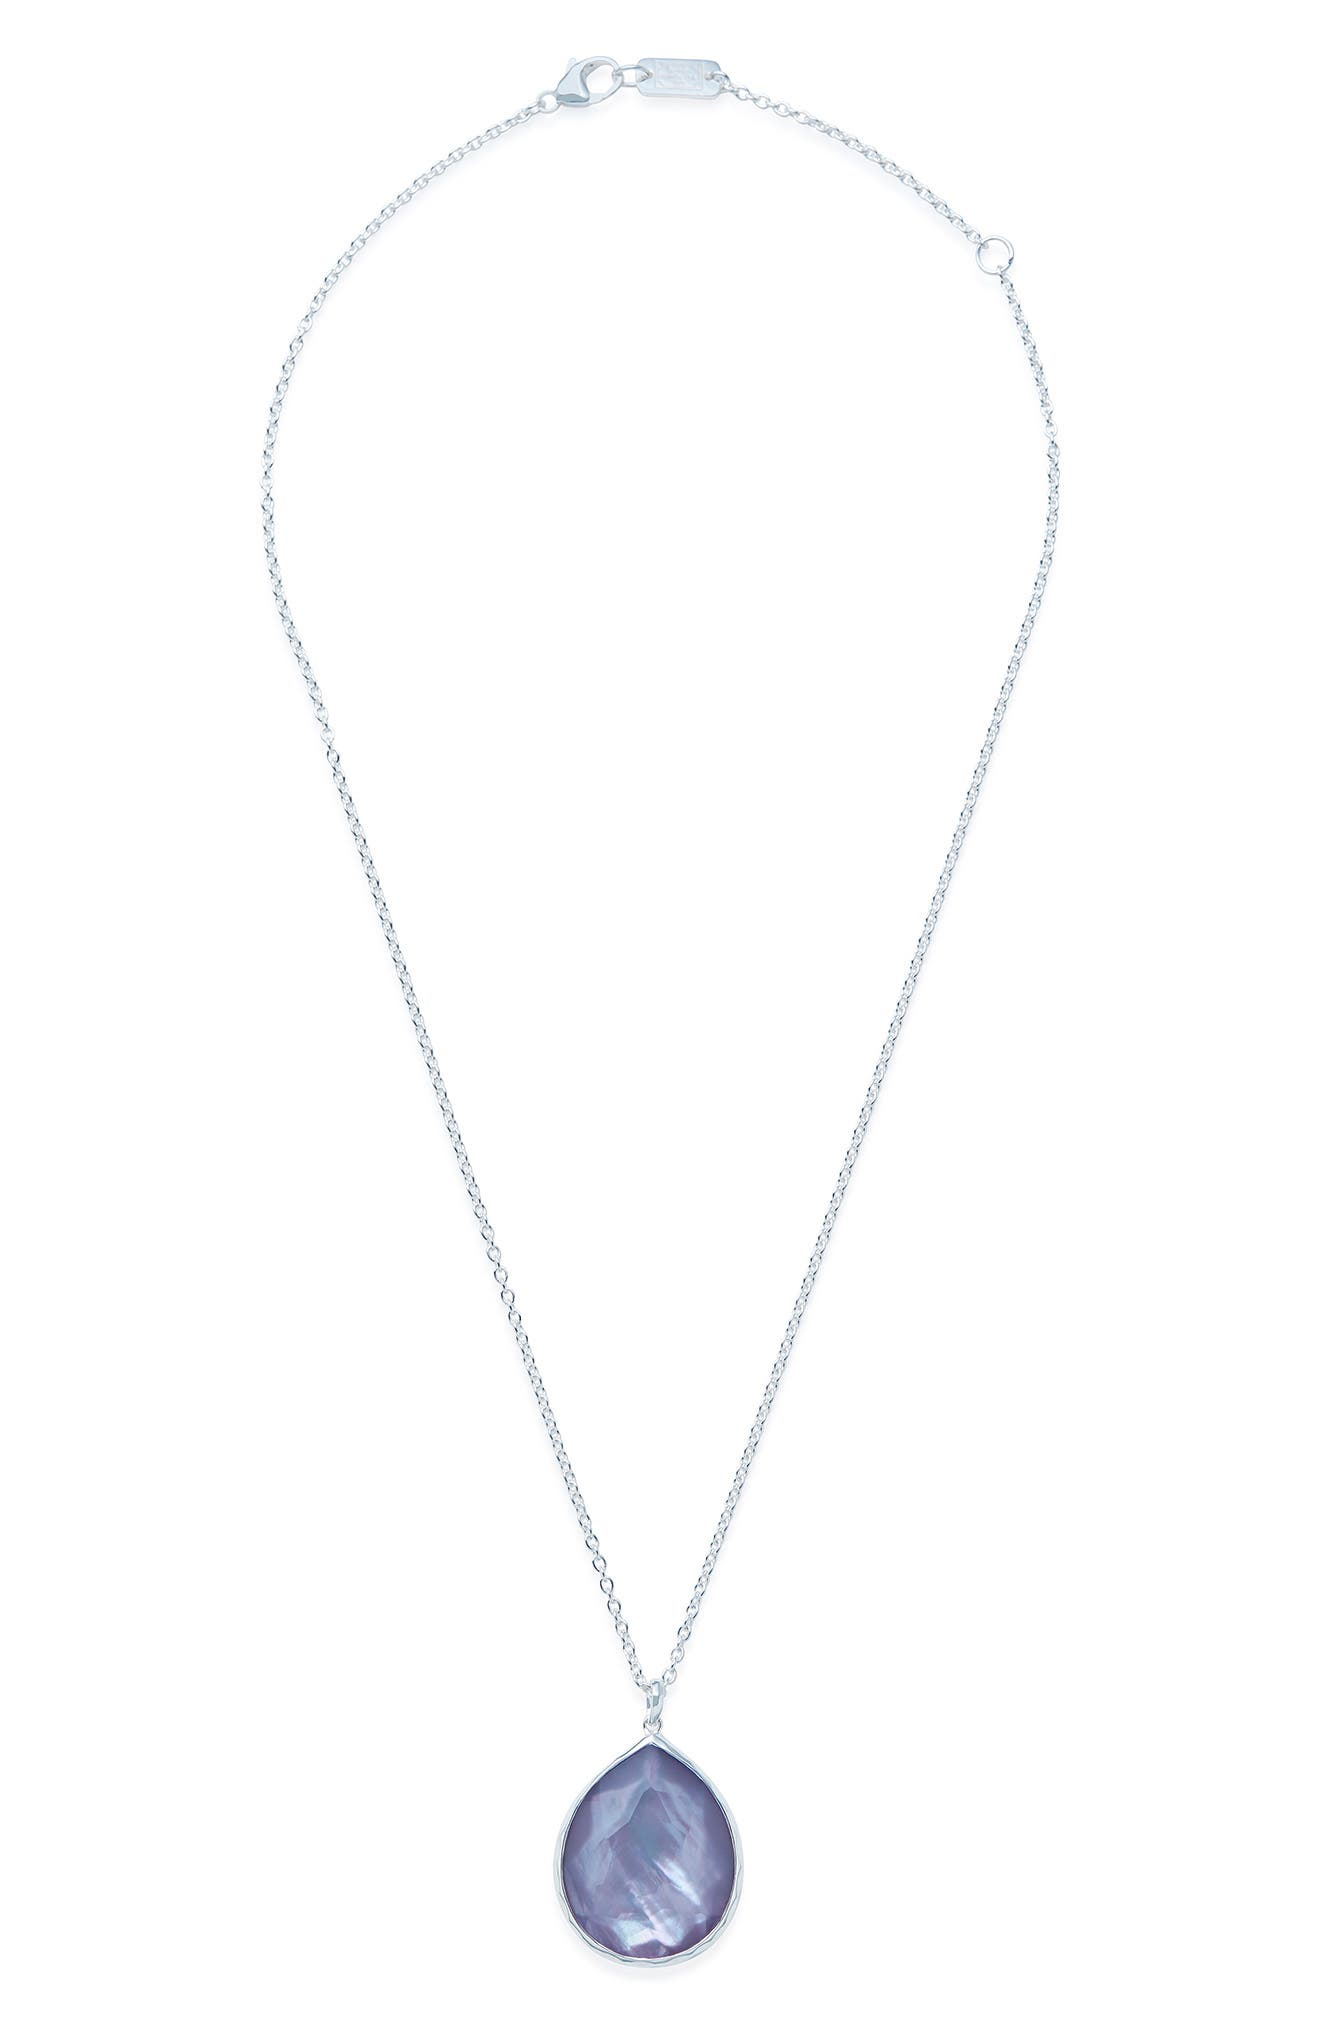 'Wonderland' Large Teardrop Pendant Necklace,                             Main thumbnail 1, color,                             Silver/ Periwinkle